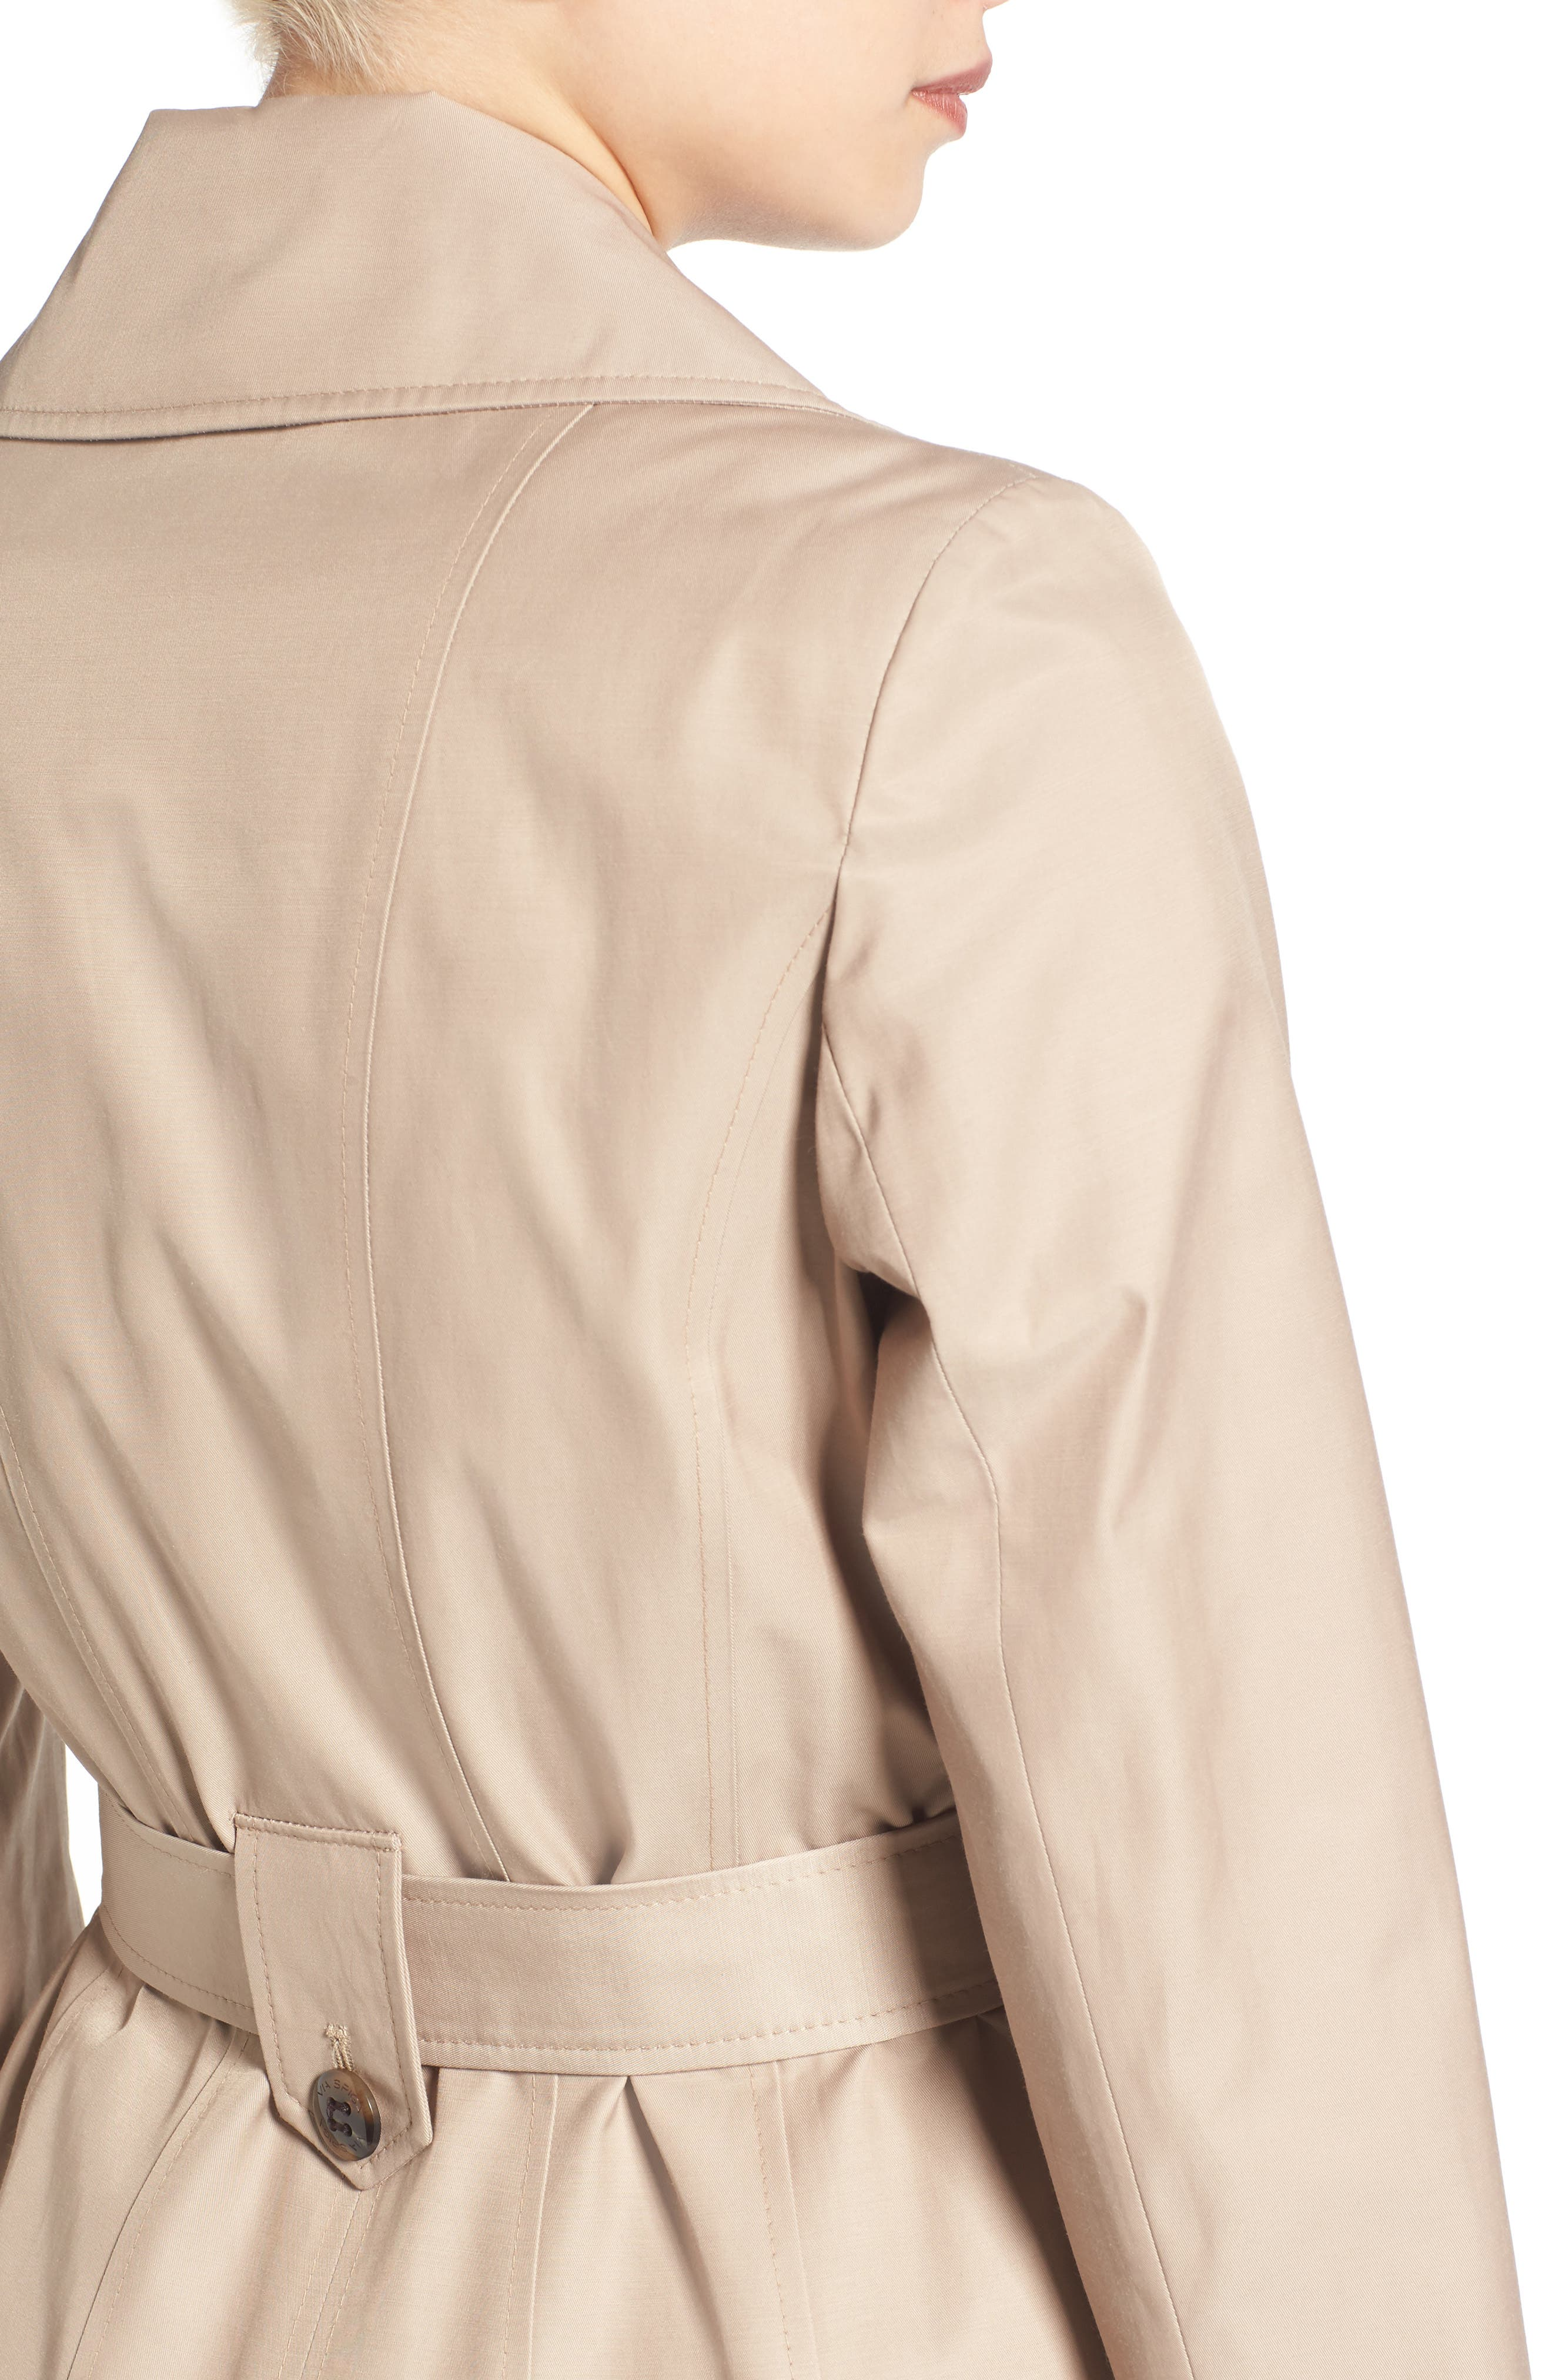 'Scarpa' Hooded Single Breasted Trench Coat,                             Alternate thumbnail 4, color,                             Sand